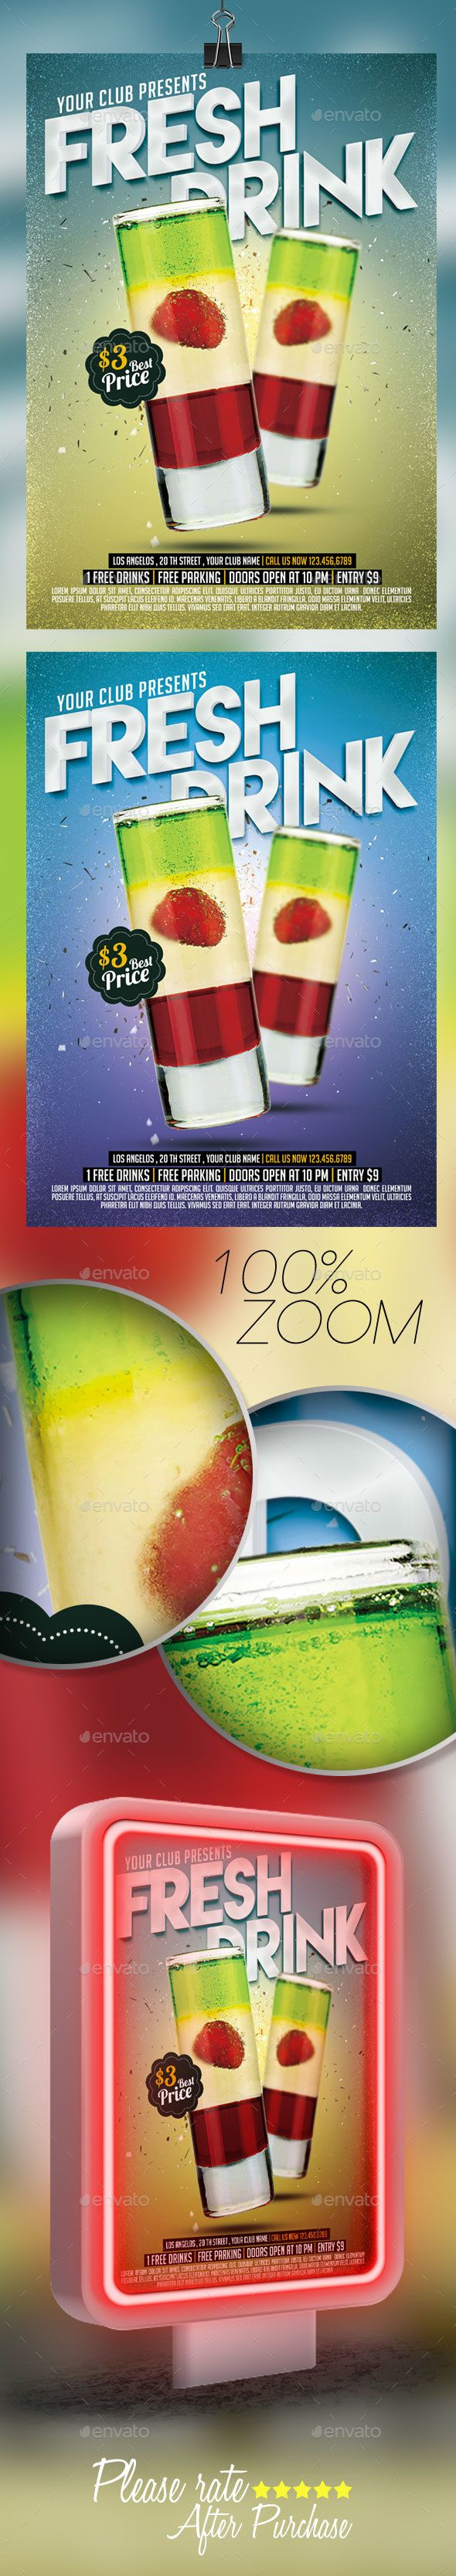 Fresh Drink Flyer   PSD Template • Download ➝ https://graphicriver.net/item/fresh-drink-flyer-template-/17119994?ref=pxcr